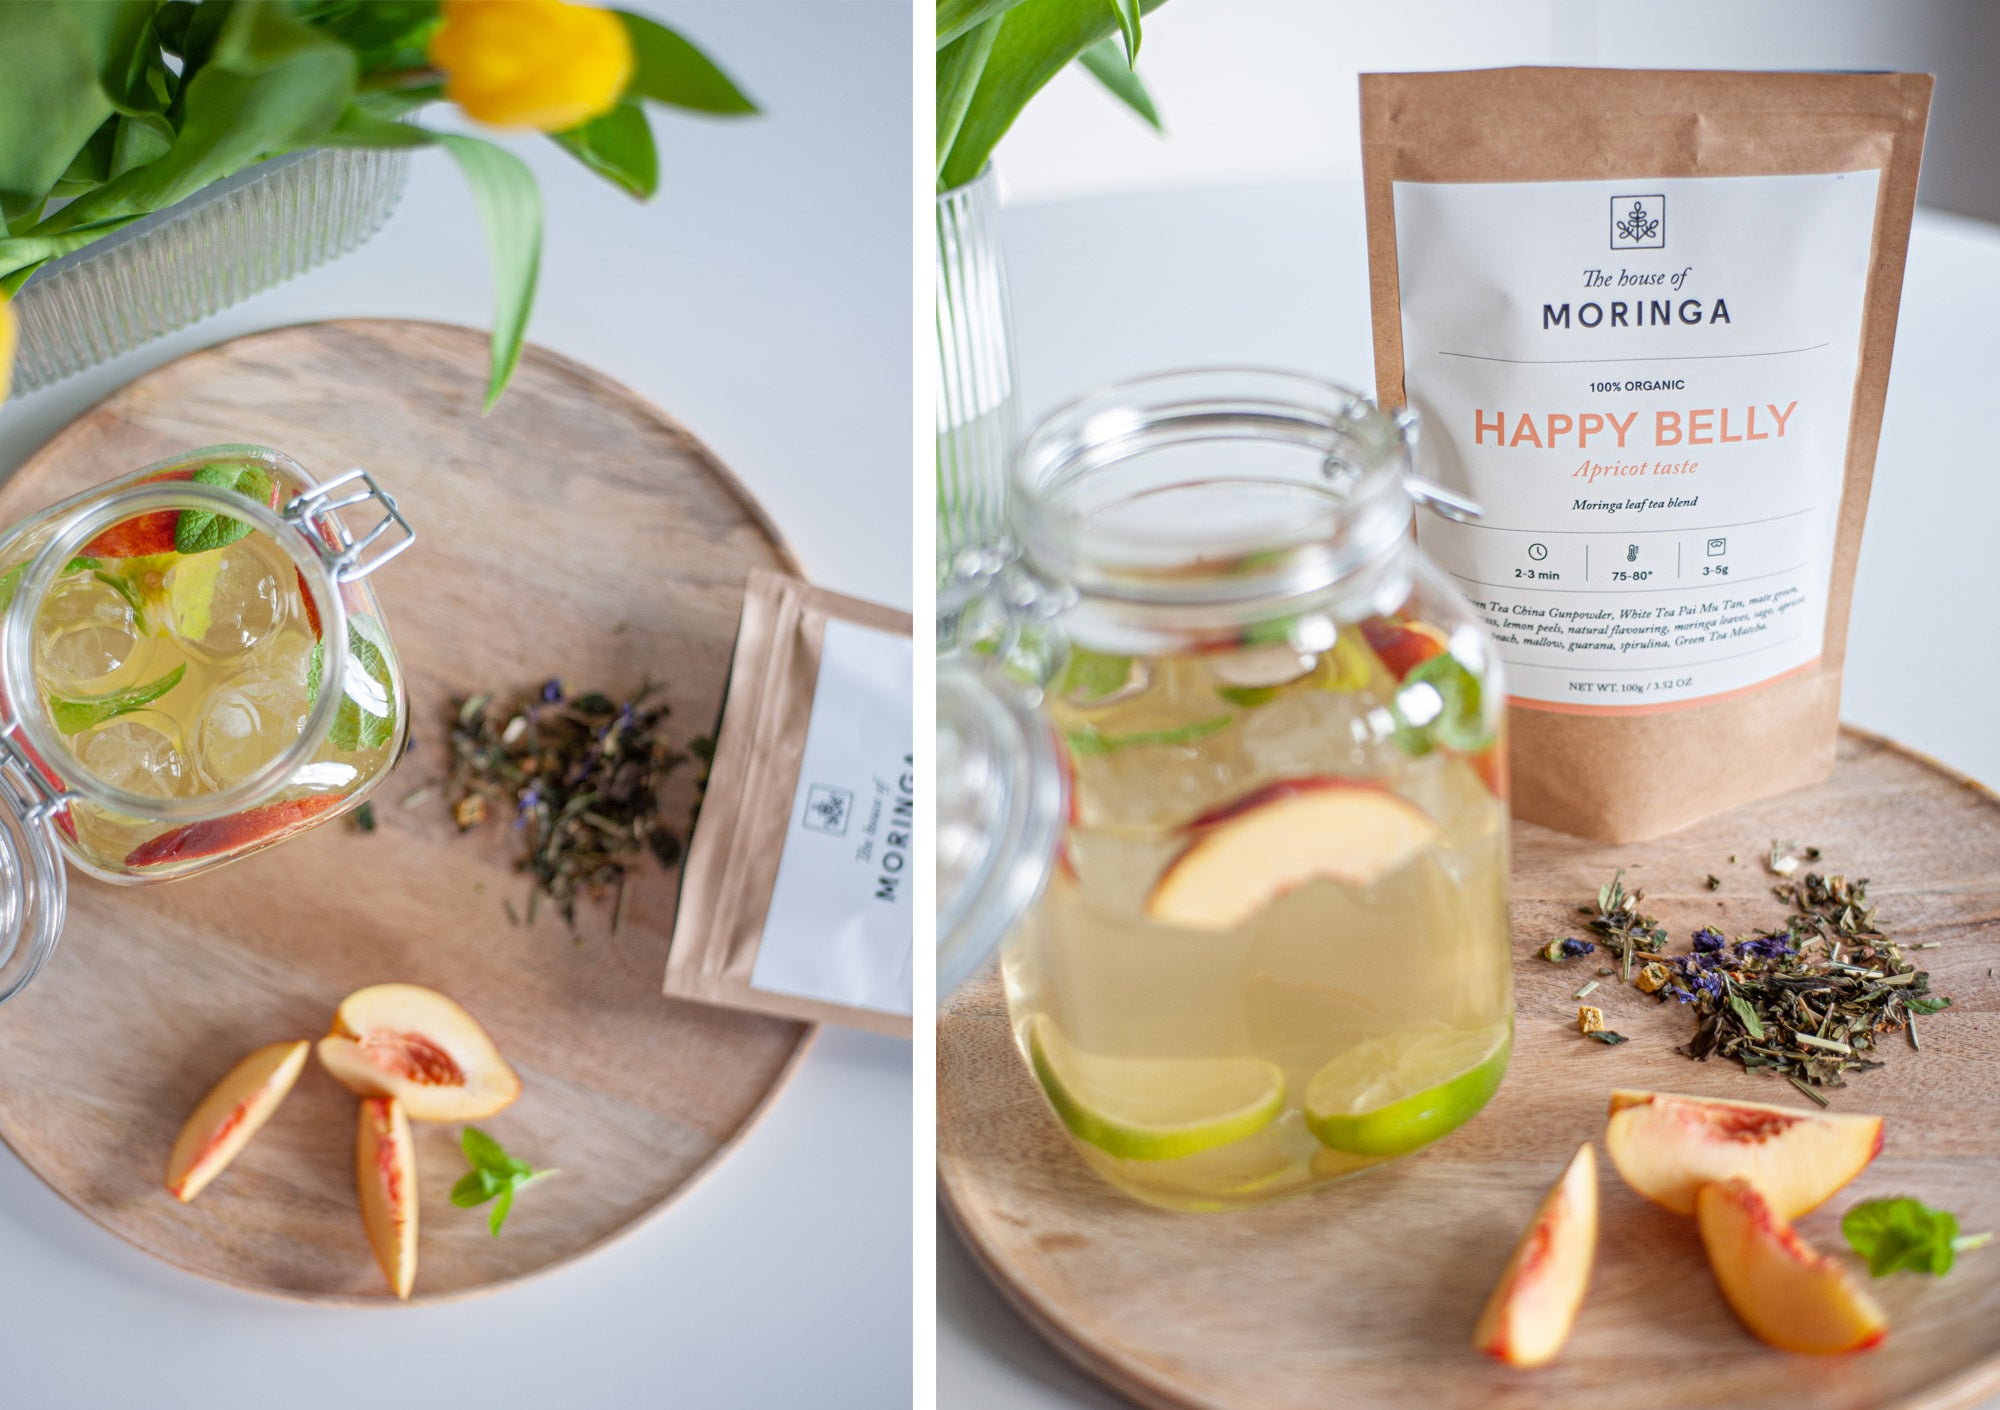 We have tea in summer! Enjoy the benefits of our Happy Belly tea and the freshness of a delicious ice tea while soaking up some spring or summer sun. We believe this can, and will, produce some smiles.